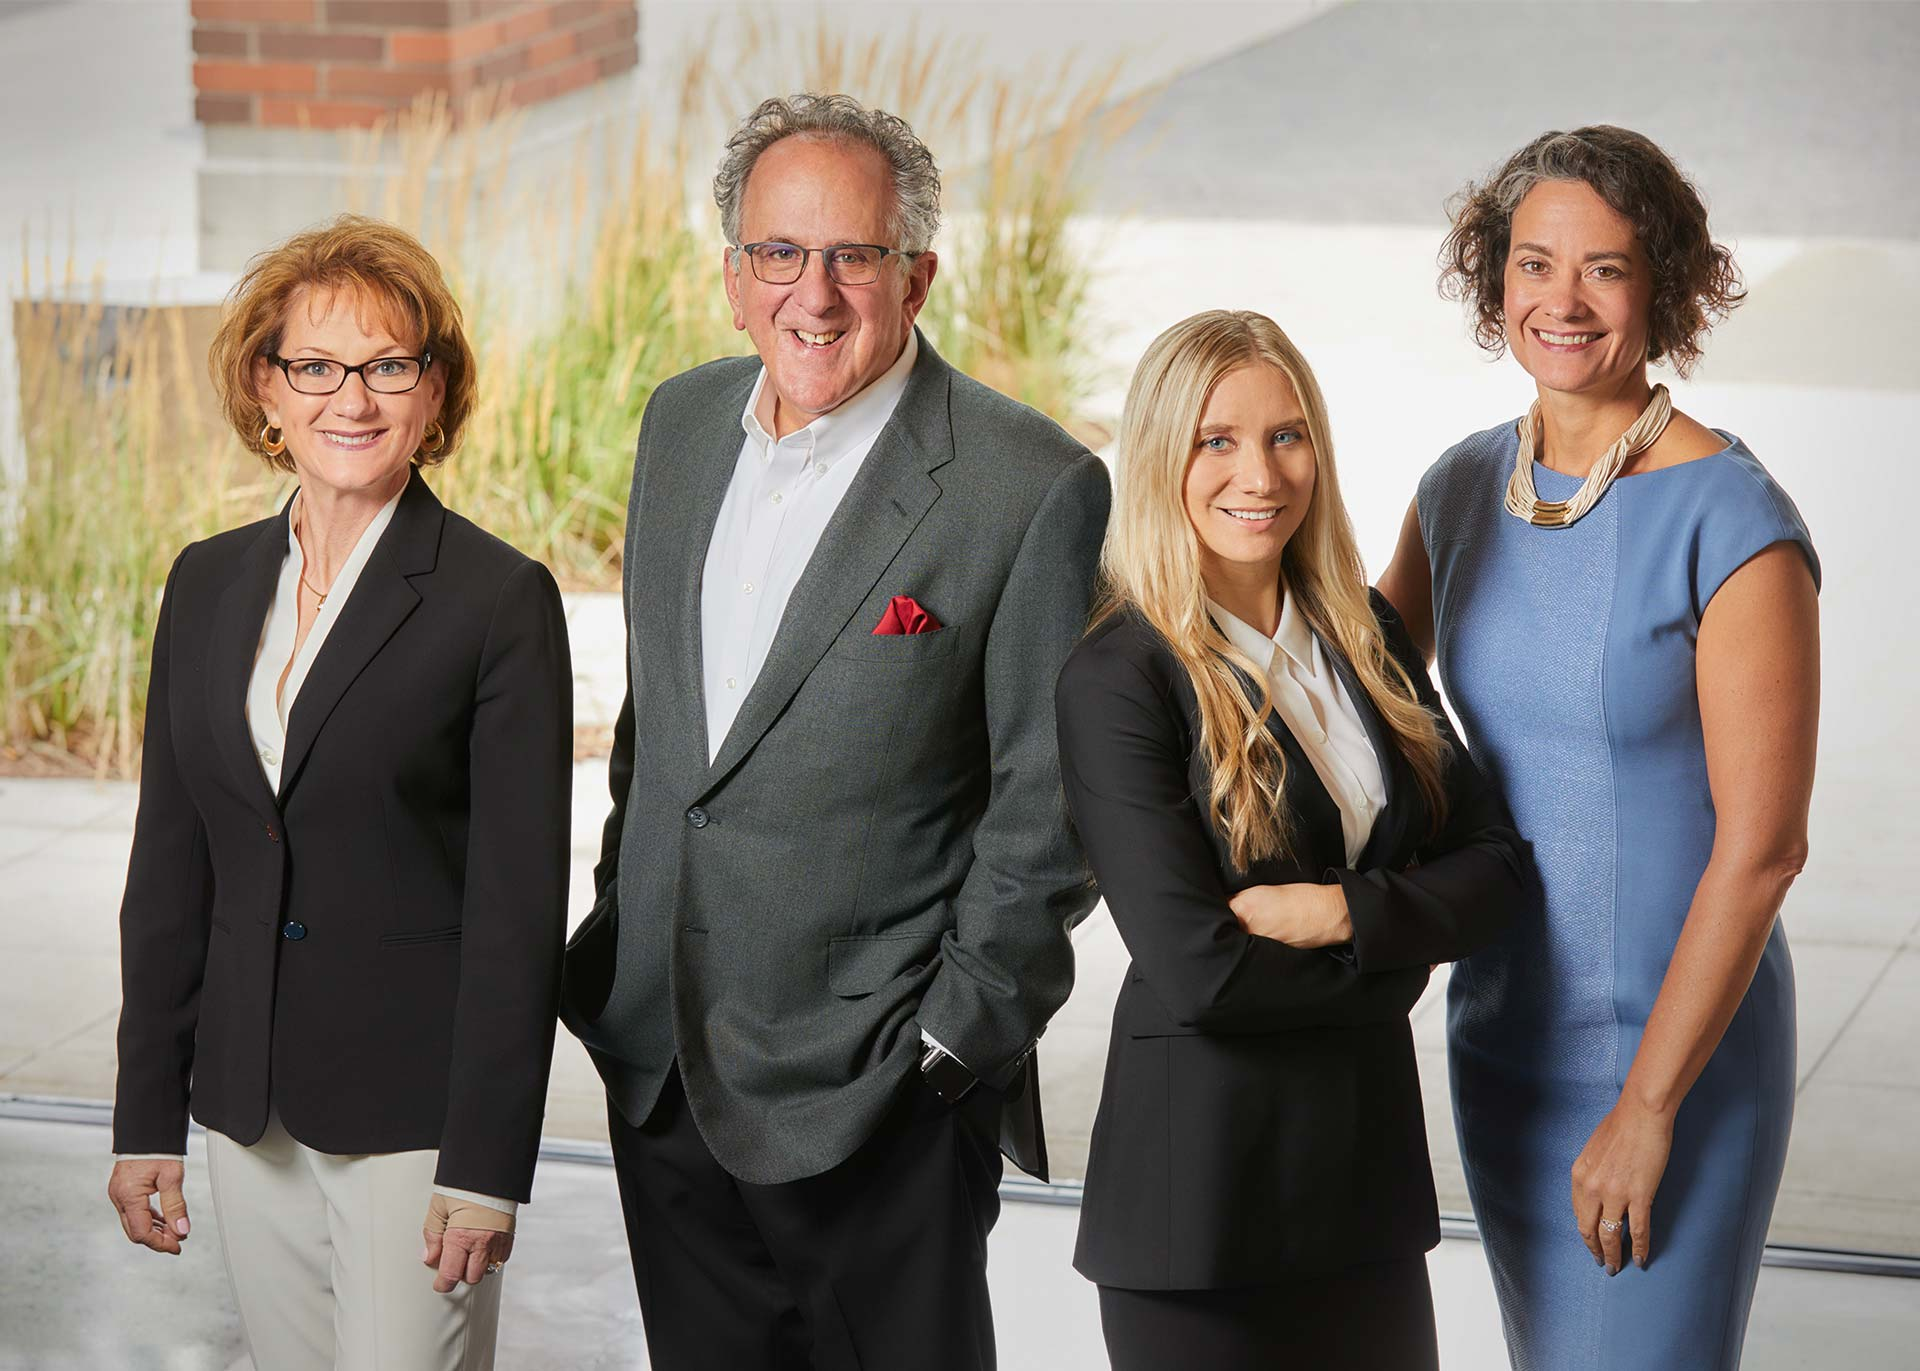 Horenstein Law Group Vancouver, WA attorneys